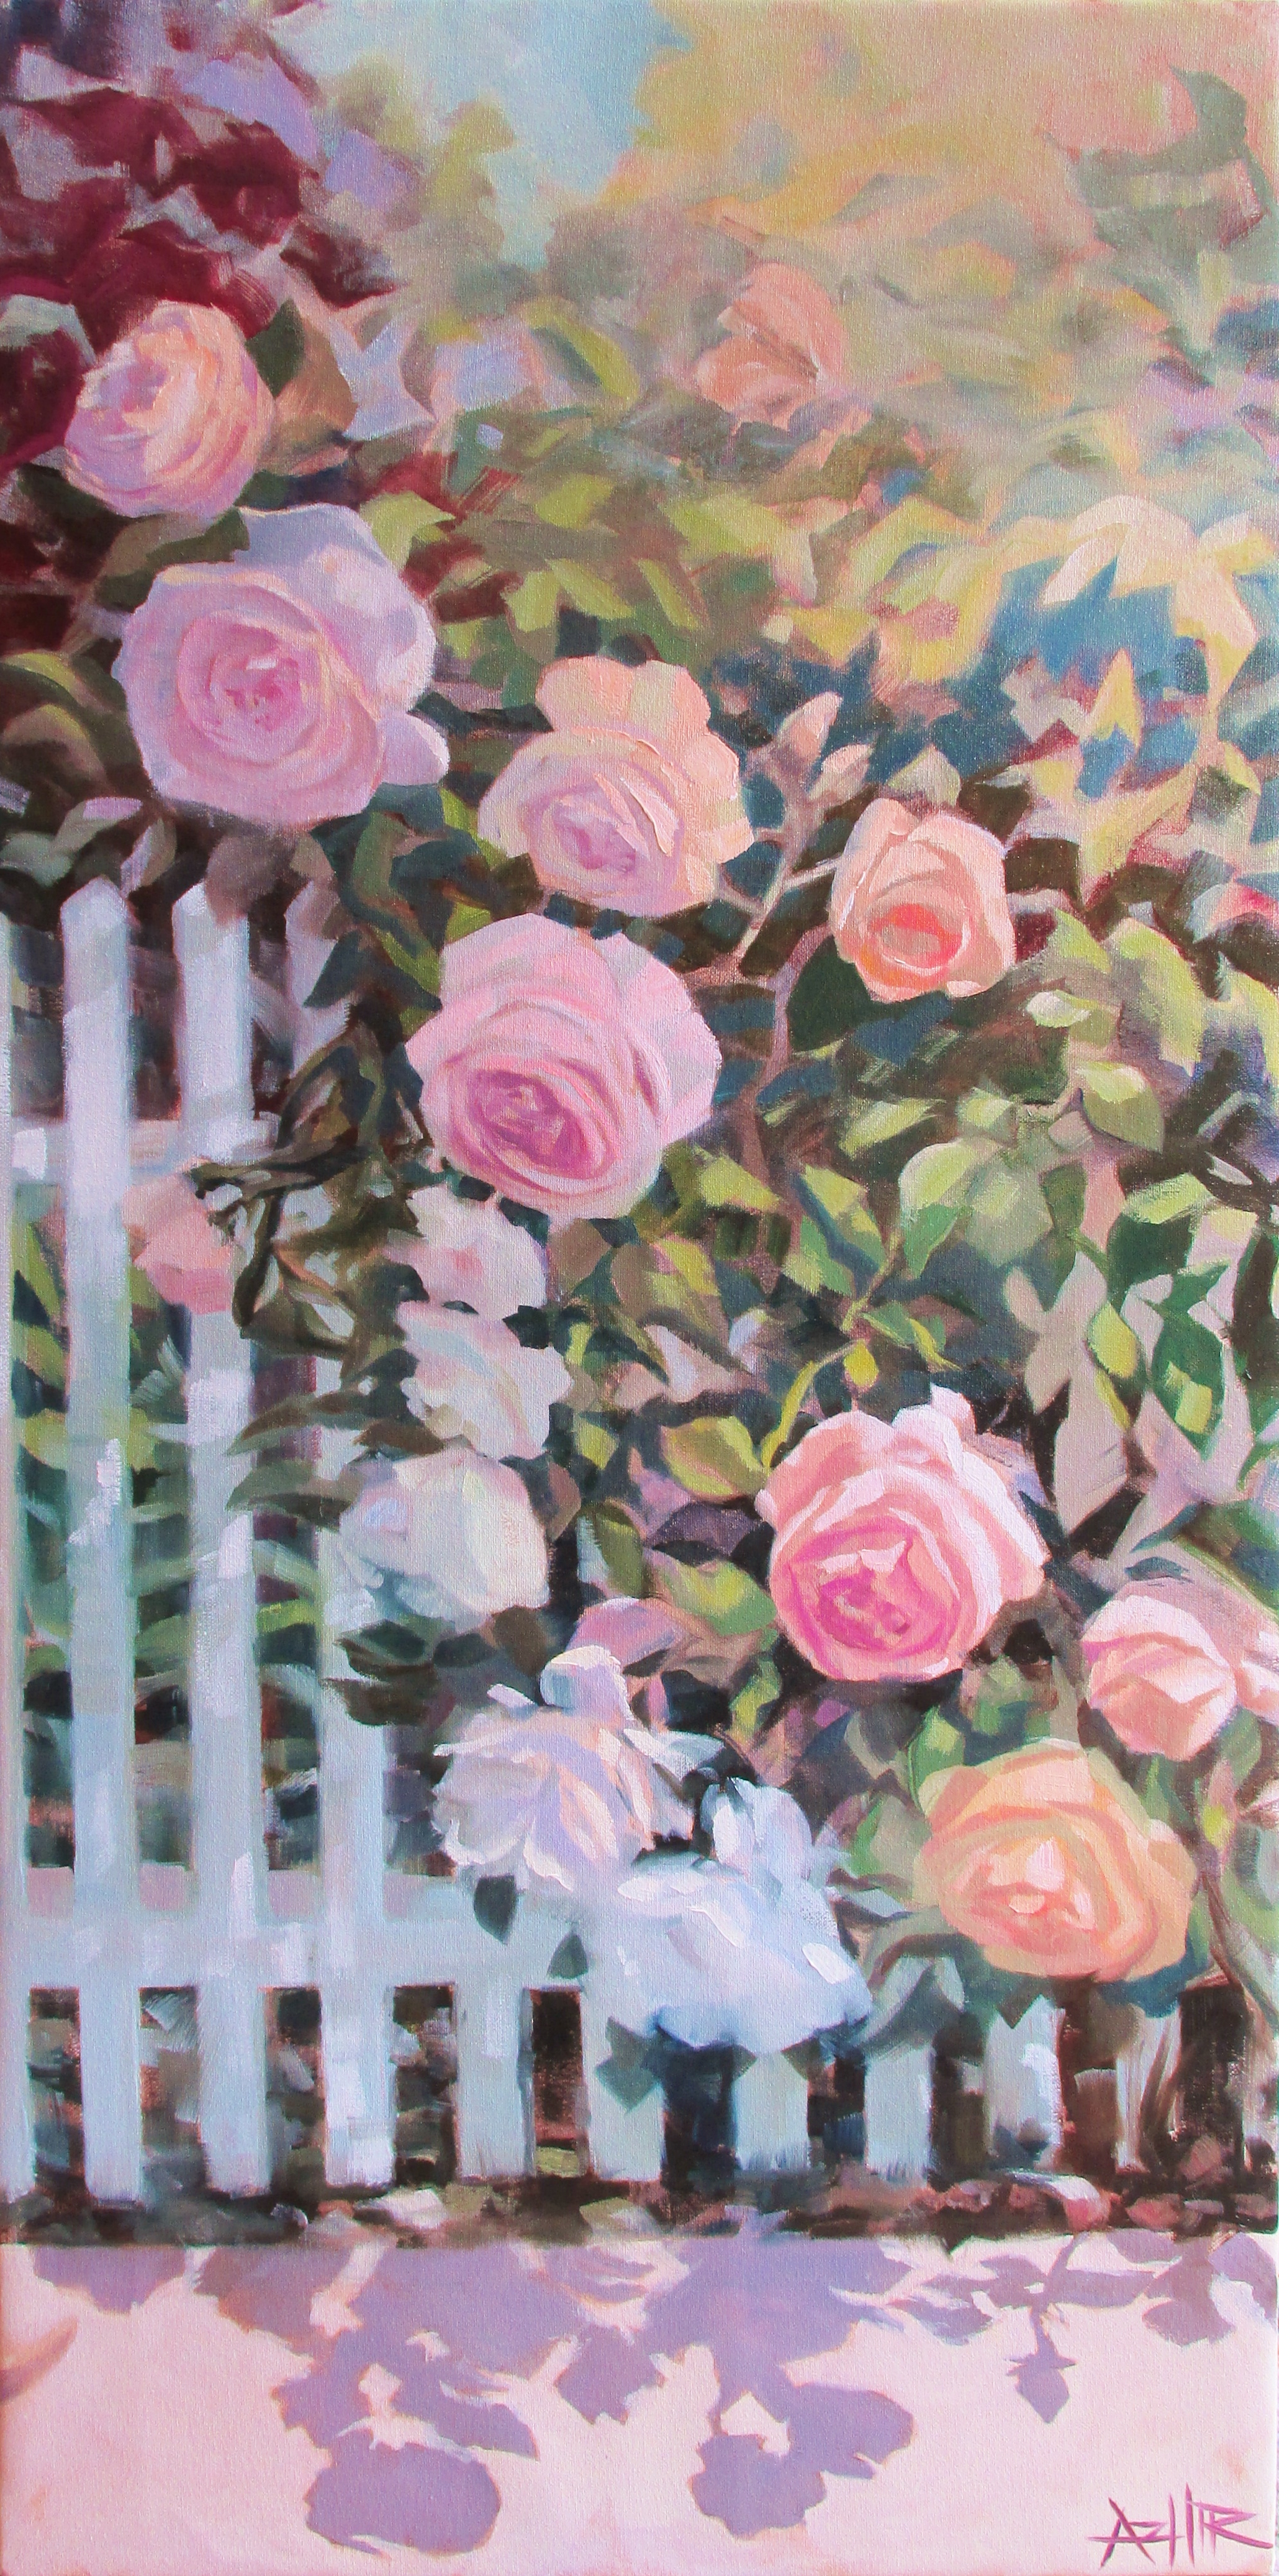 """SOLD, Roses on the Picket Fence, Copyright 2016 Hirschten, Oil on Canvas, 18"""" x 36"""""""